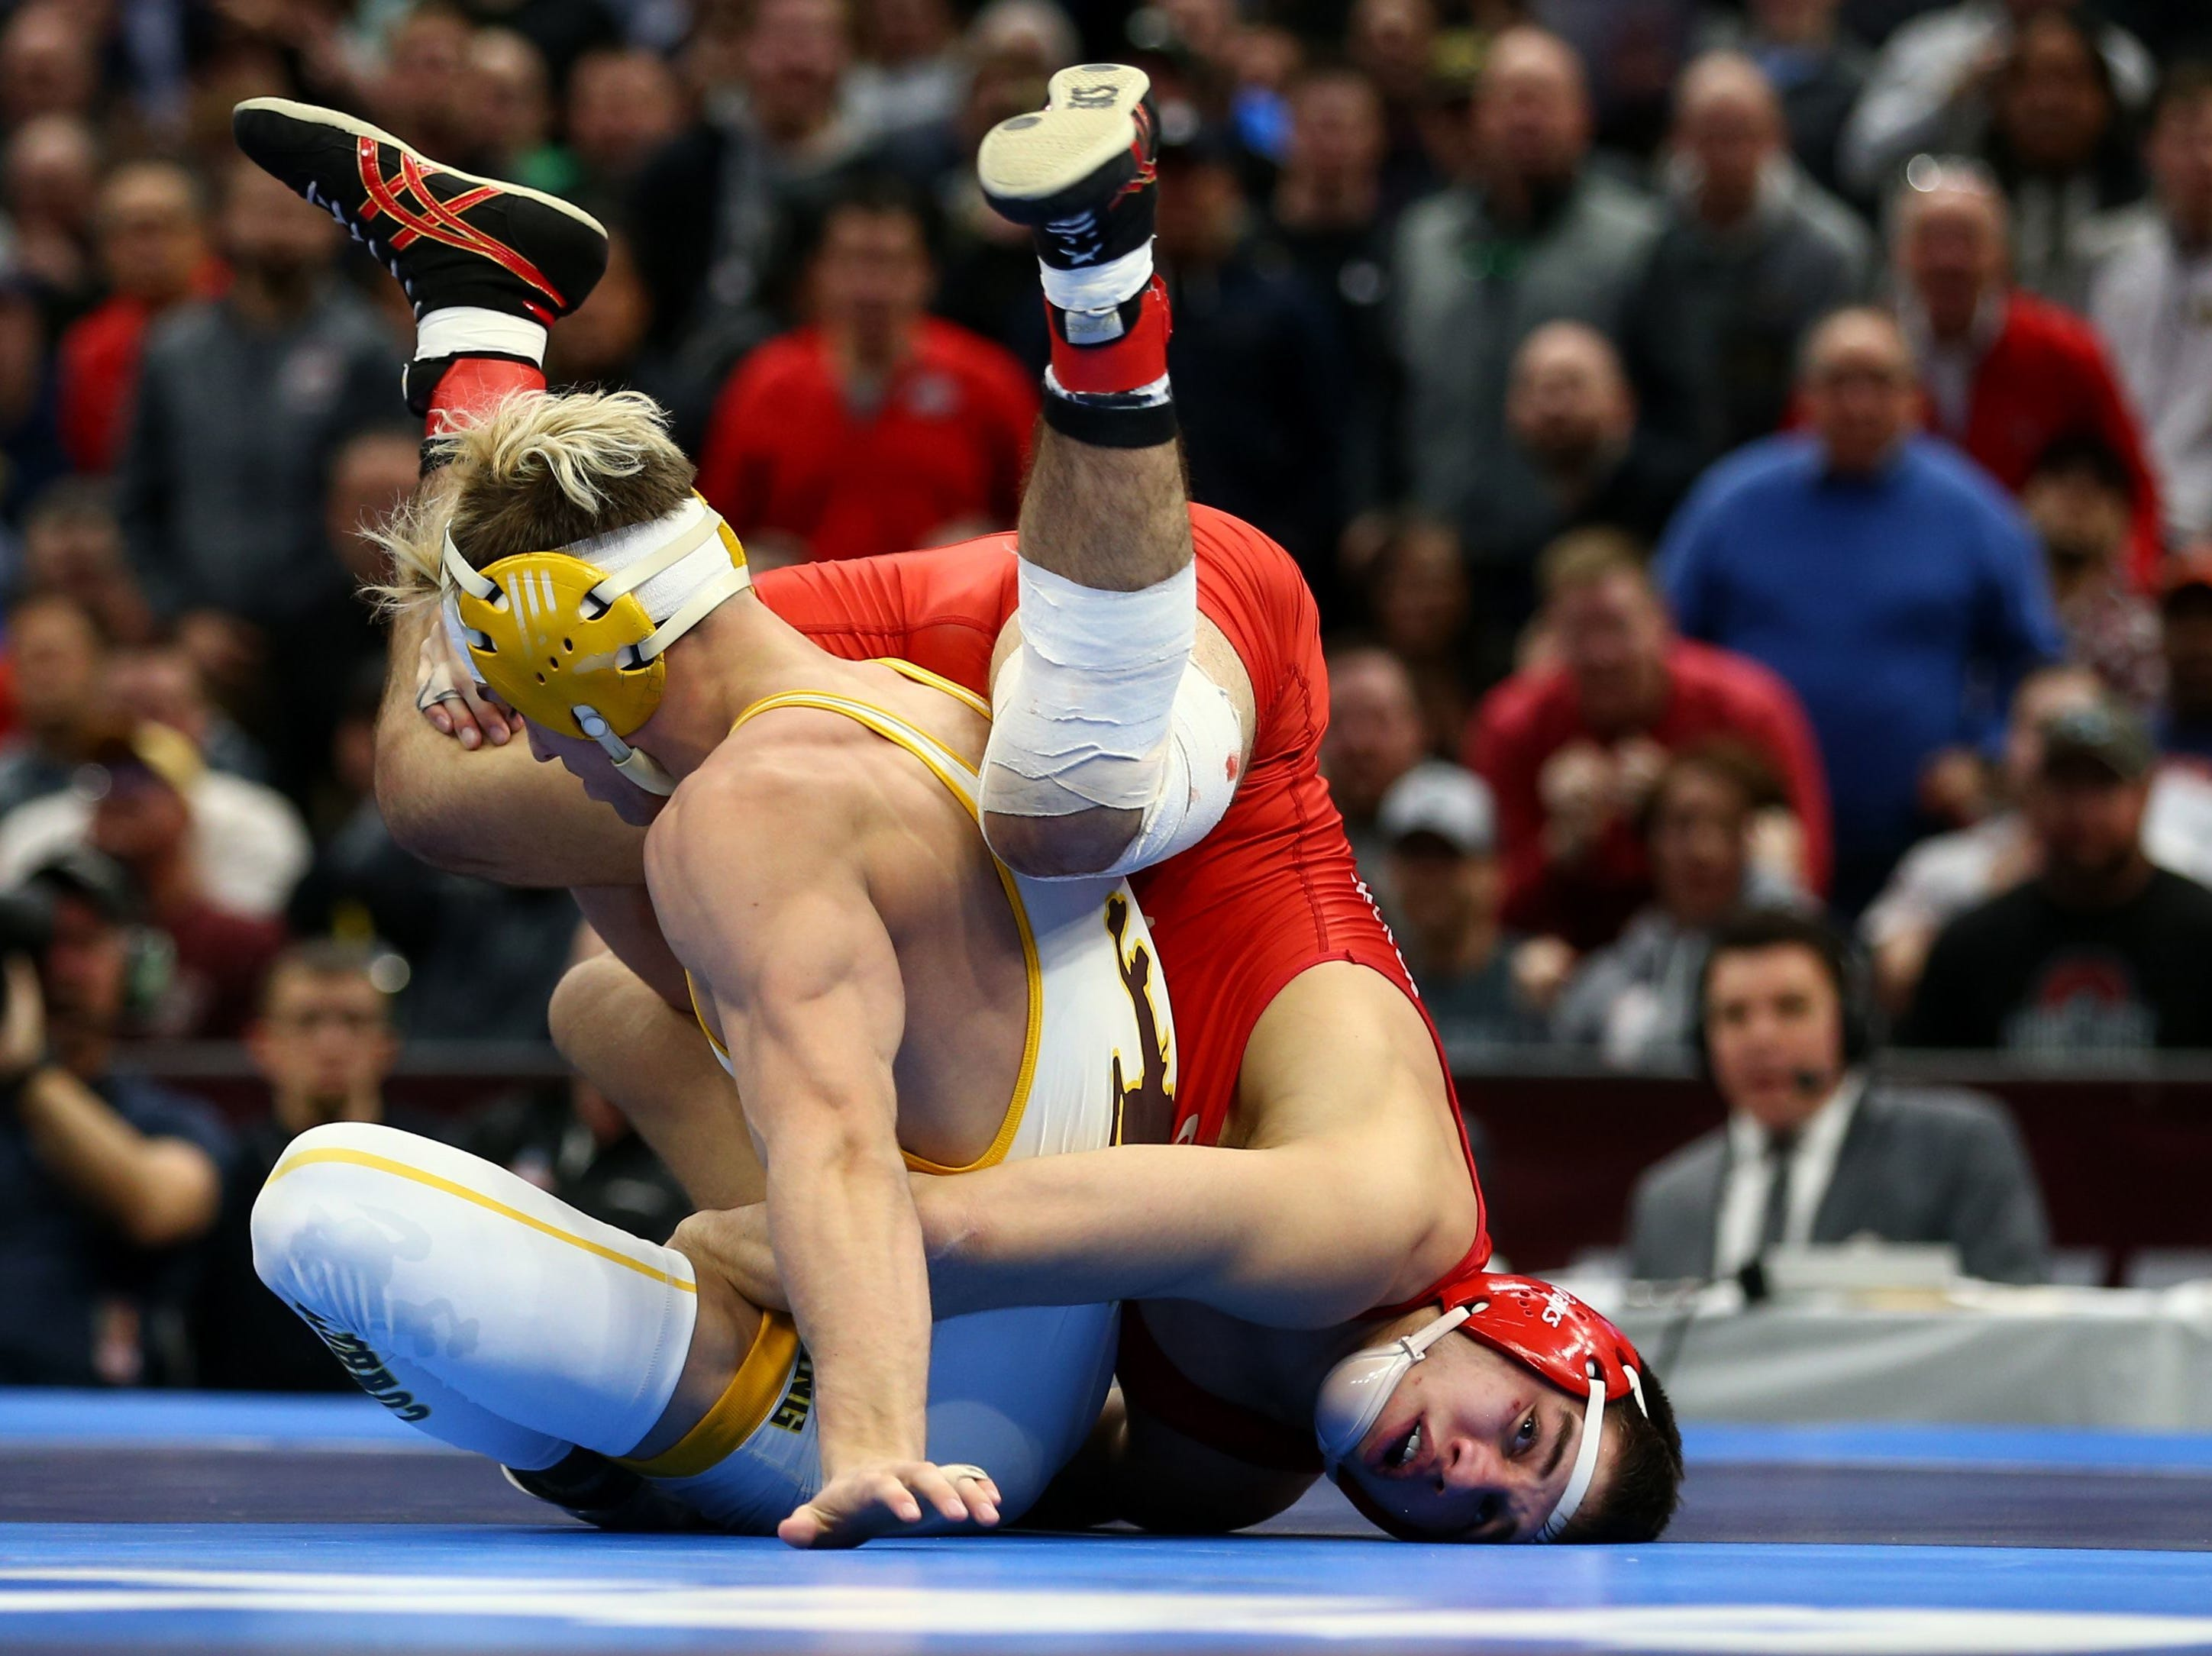 Wyoming  wrestler Meredith, white, competes against Cornell wrester Diakomihalis during the NCAA Wrestling DI Wrestling Championships at Quicken Loans Arena. Mar 17, 2018; Cleveland, OH, USA; Wyoming Cowboys wrestler Bryce Meredith (white) competes against Cornell wrester Yianni Diakomihalis (red) during the NCAA Wrestling DI Wrestling Championships at Quicken Loans Arena. Mandatory Credit: Aaron Doster-USA TODAY Sports